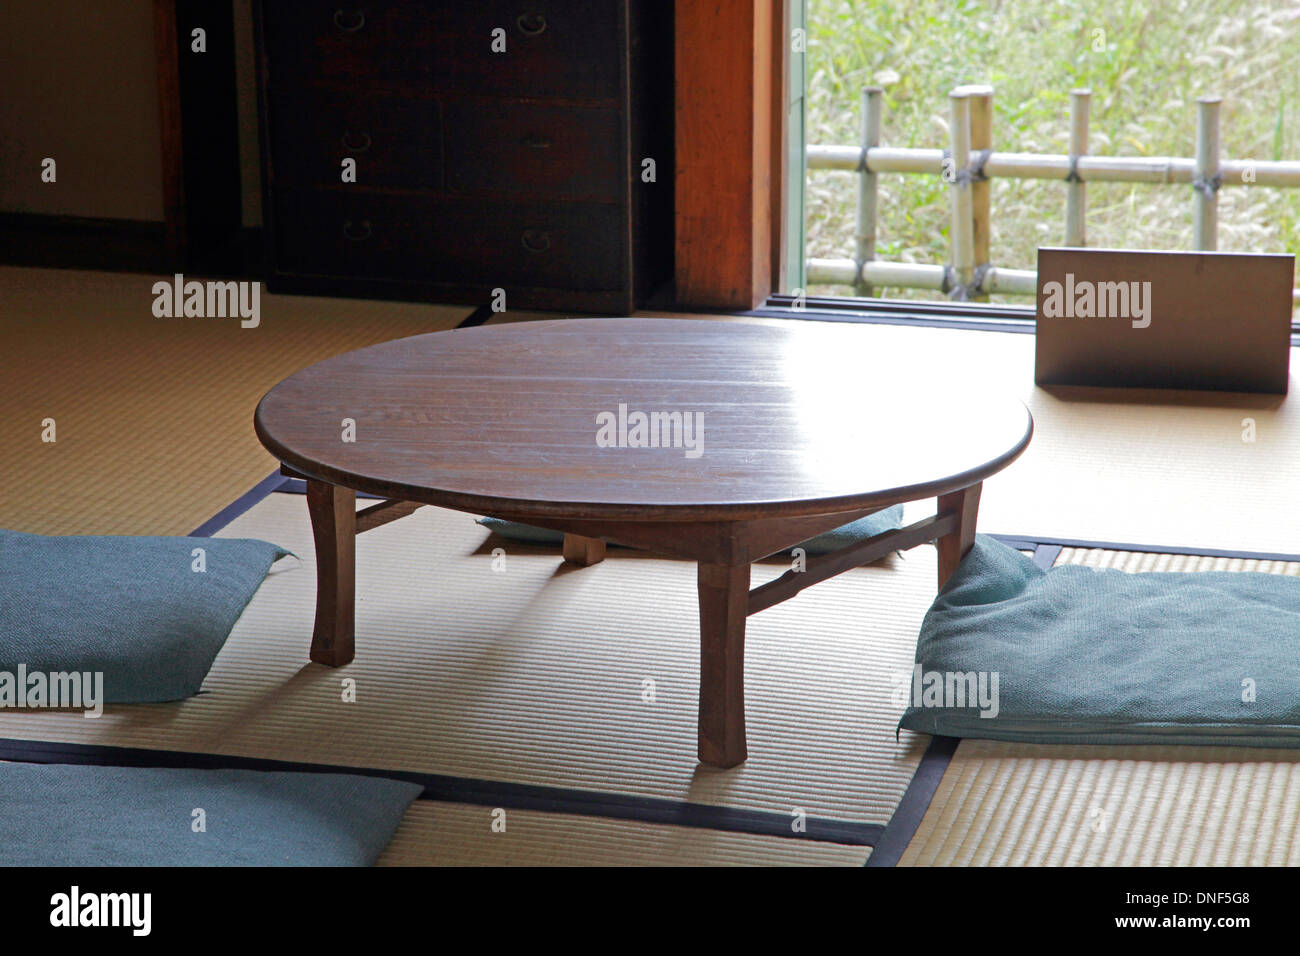 A Chabudai traditional Japanese table in a Tatami mat room at Edo -Tokyo Open Air Architectural Museum Stock Photo